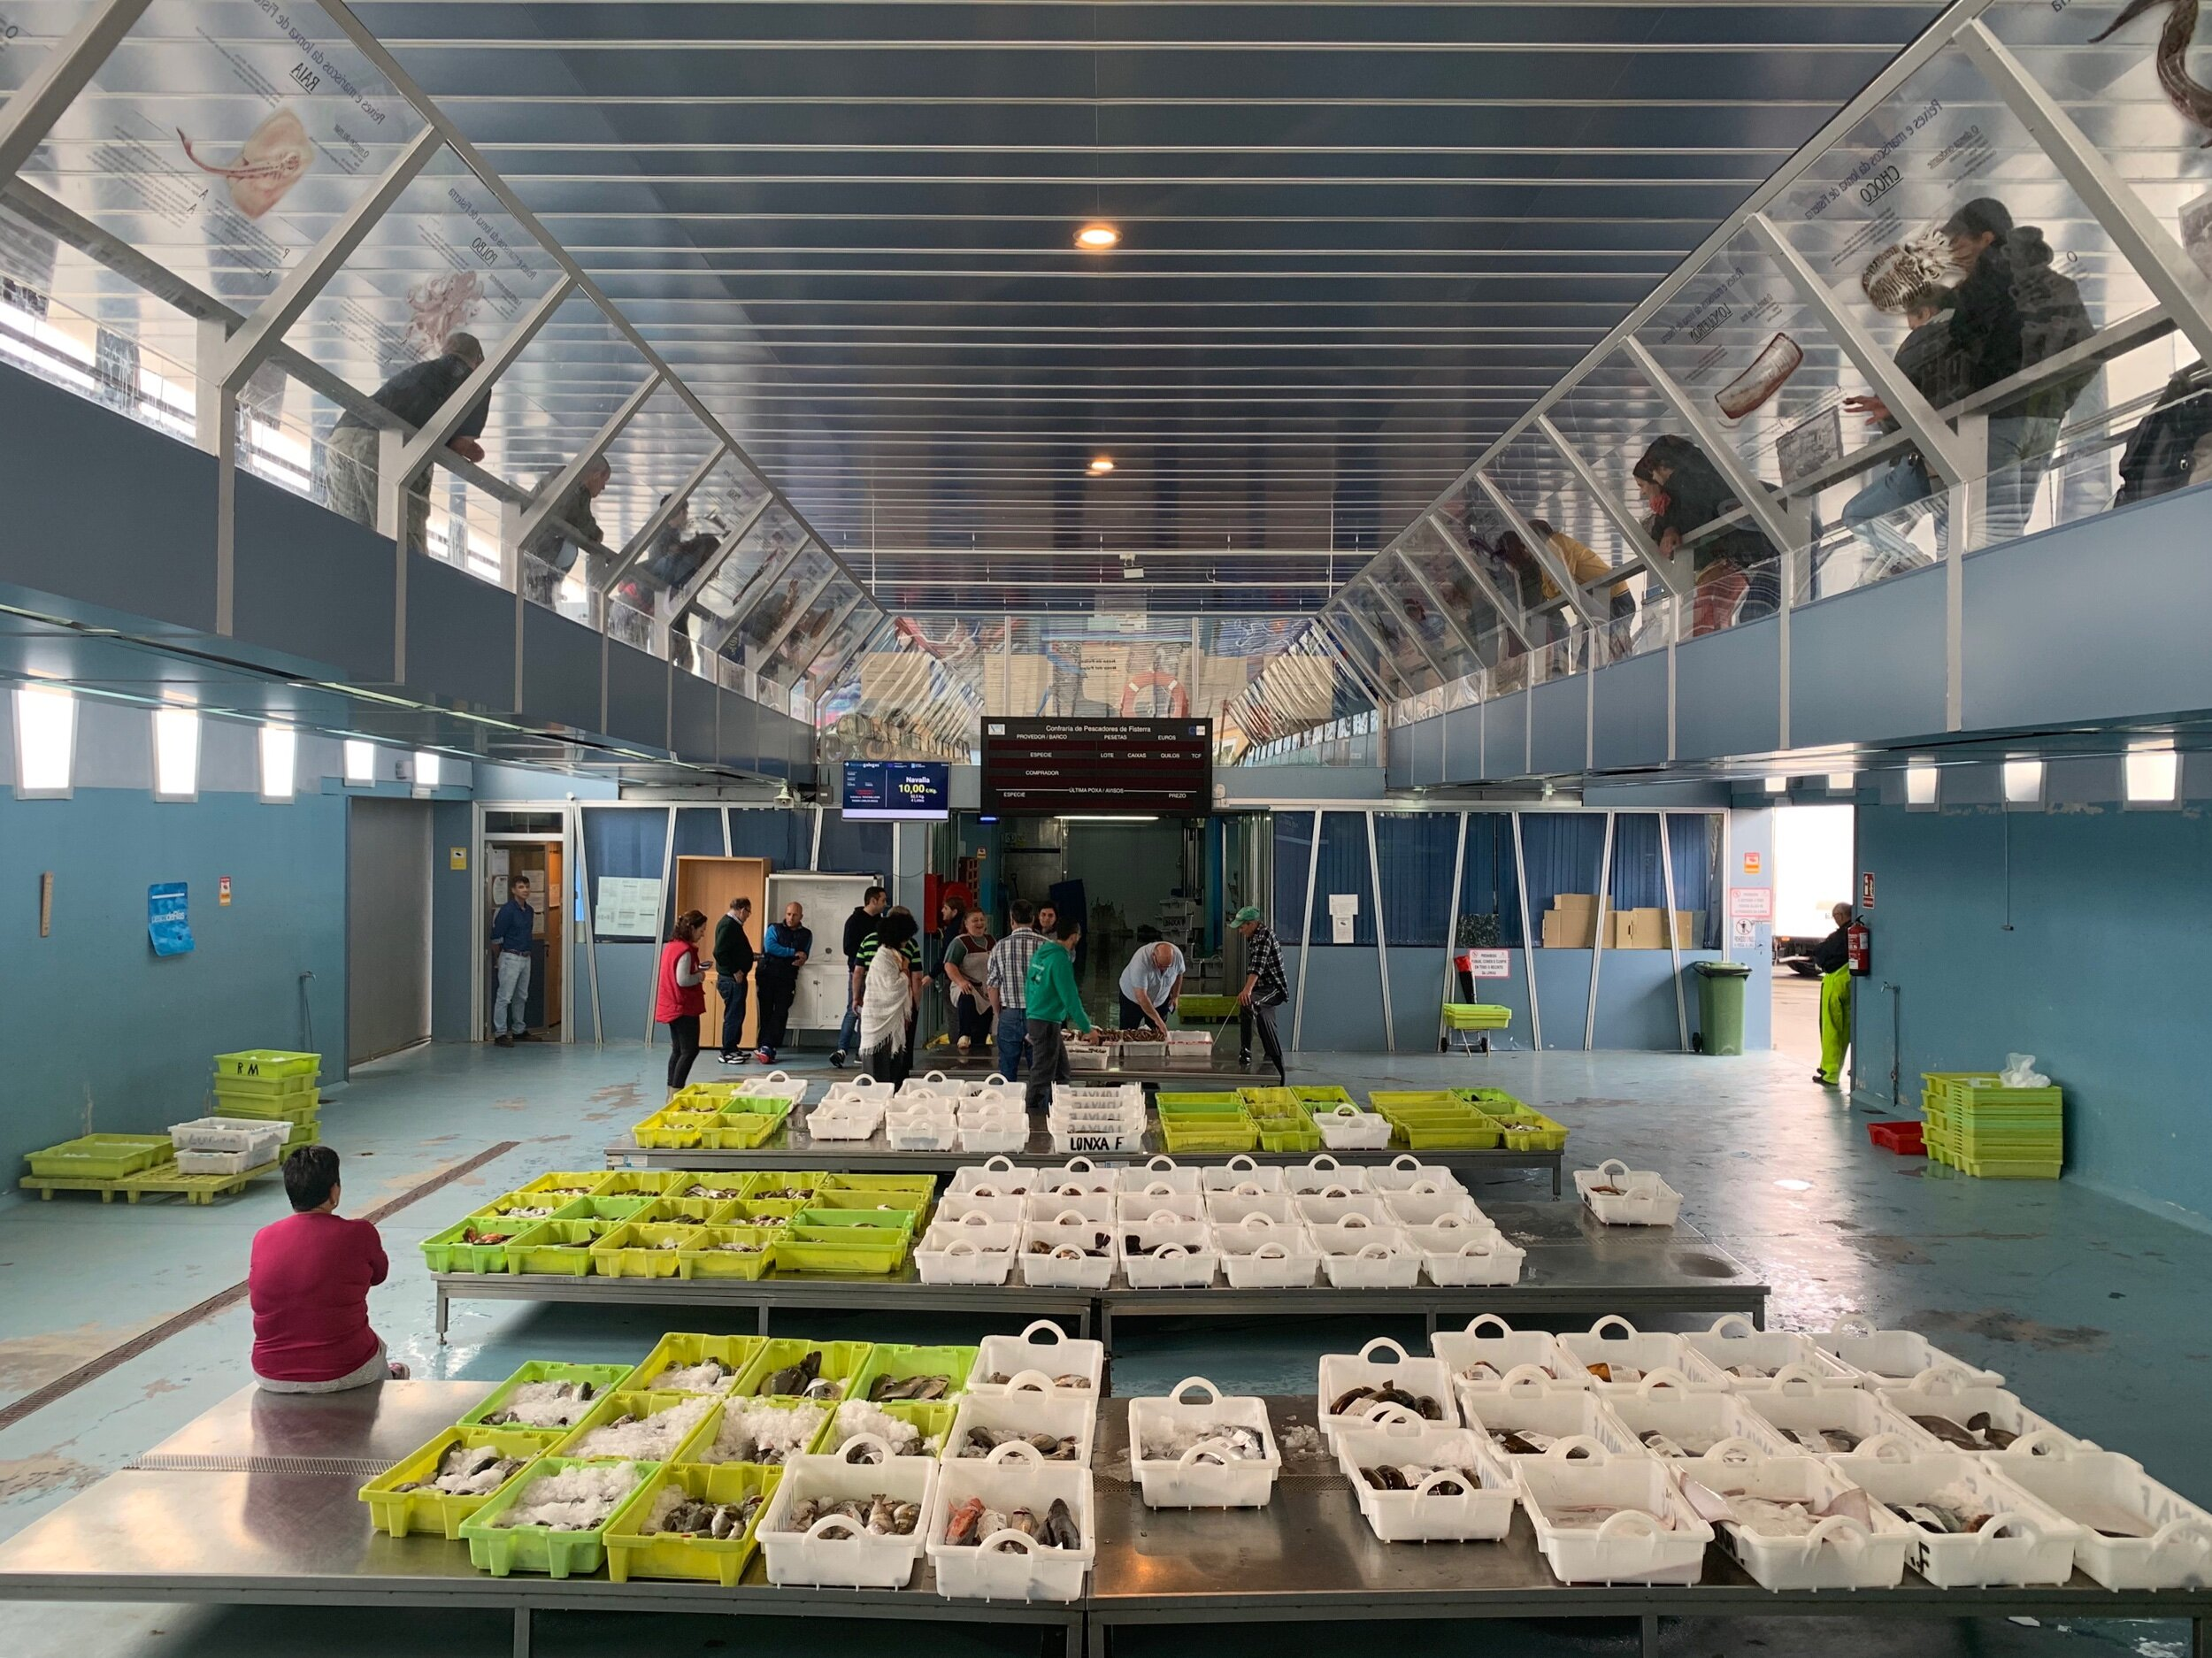 The wholesale fish market in Finisterre.